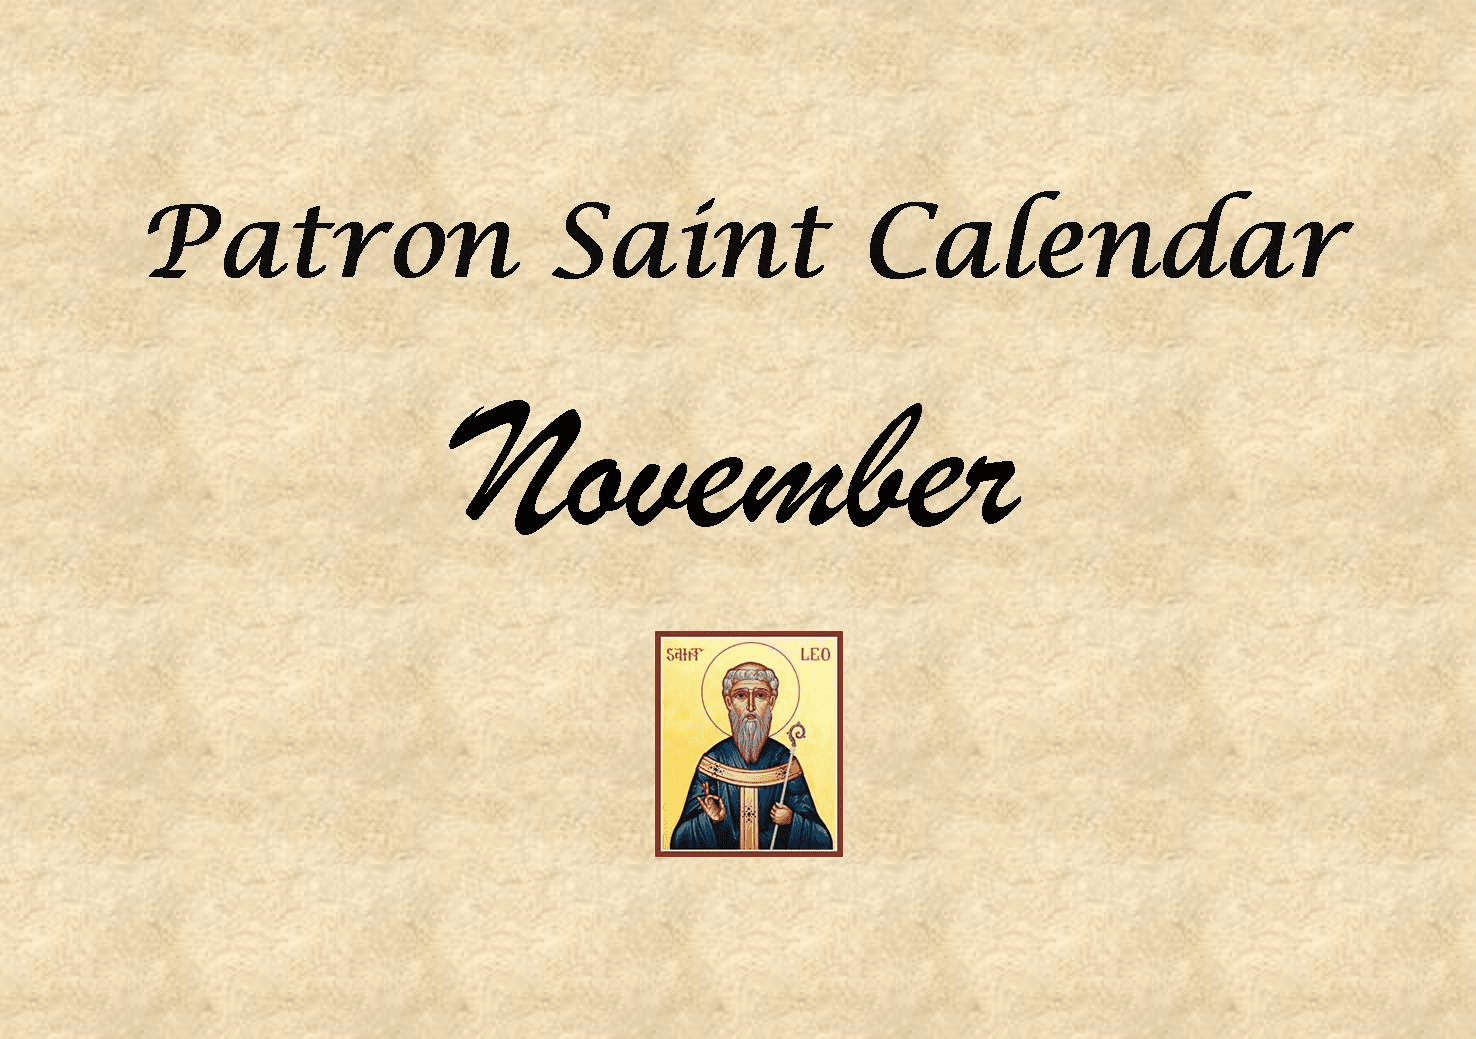 Patron Saint Memorial Feast Day for the Month of November